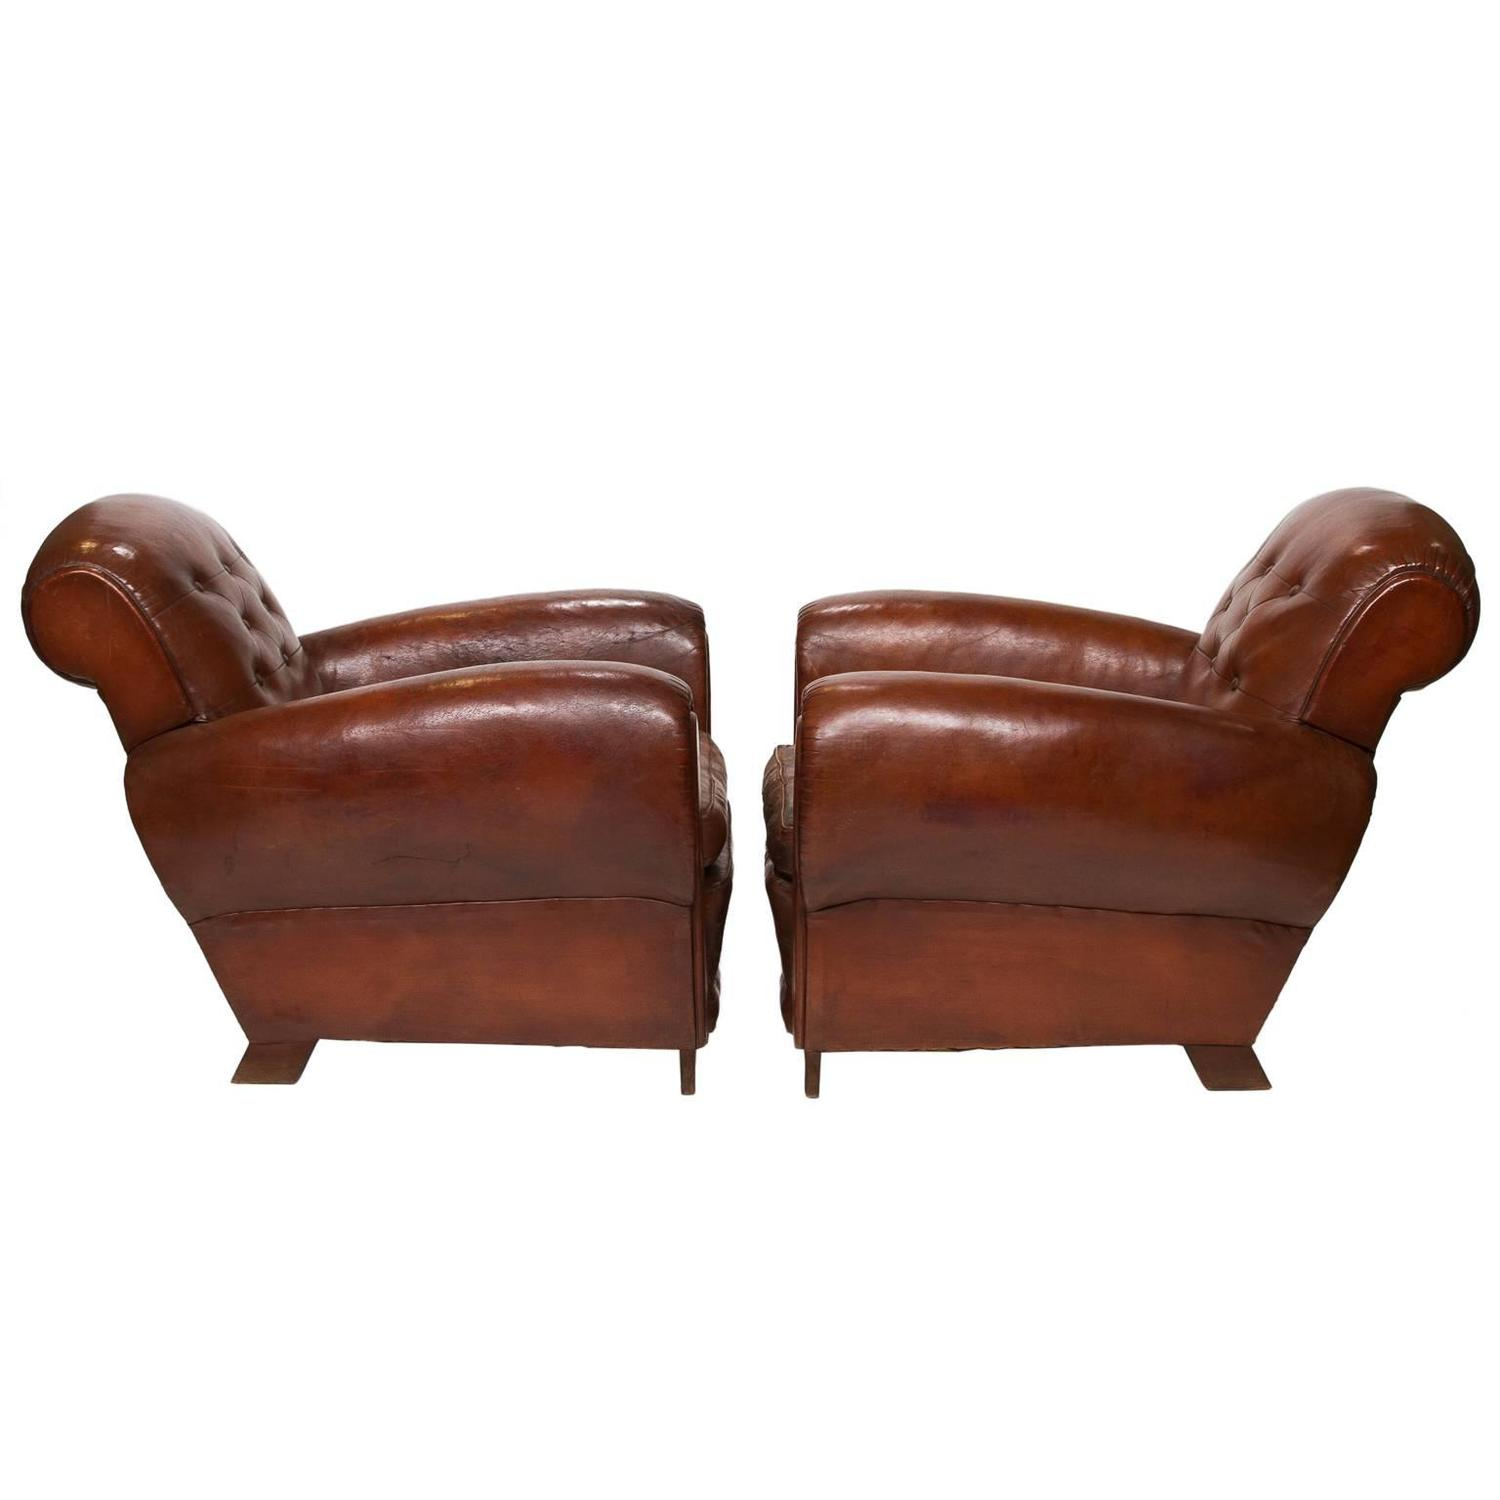 french club chairs for sale kids wooden desk leather at 1stdibs